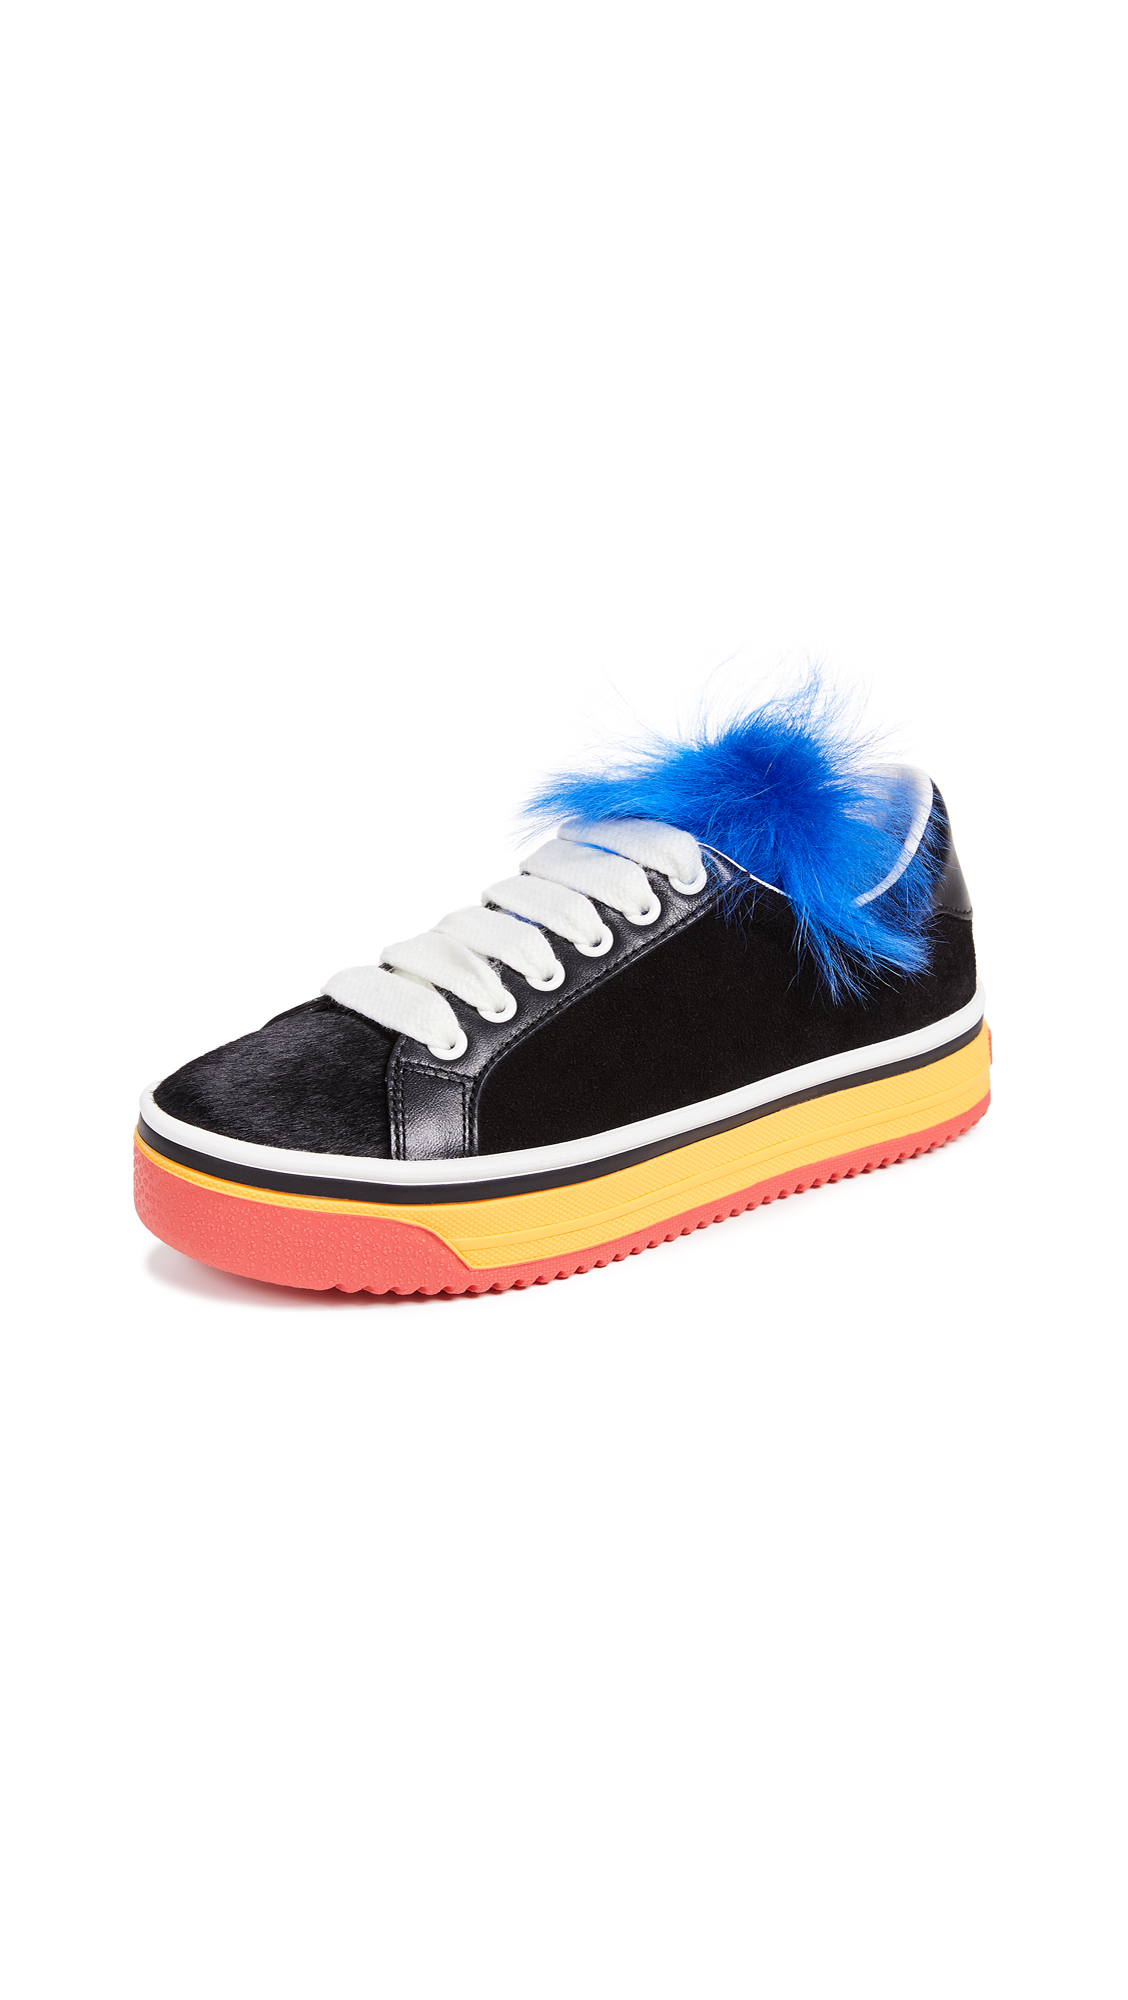 Marc Jacobs Love Empire Fur Sneakers - Black Multi